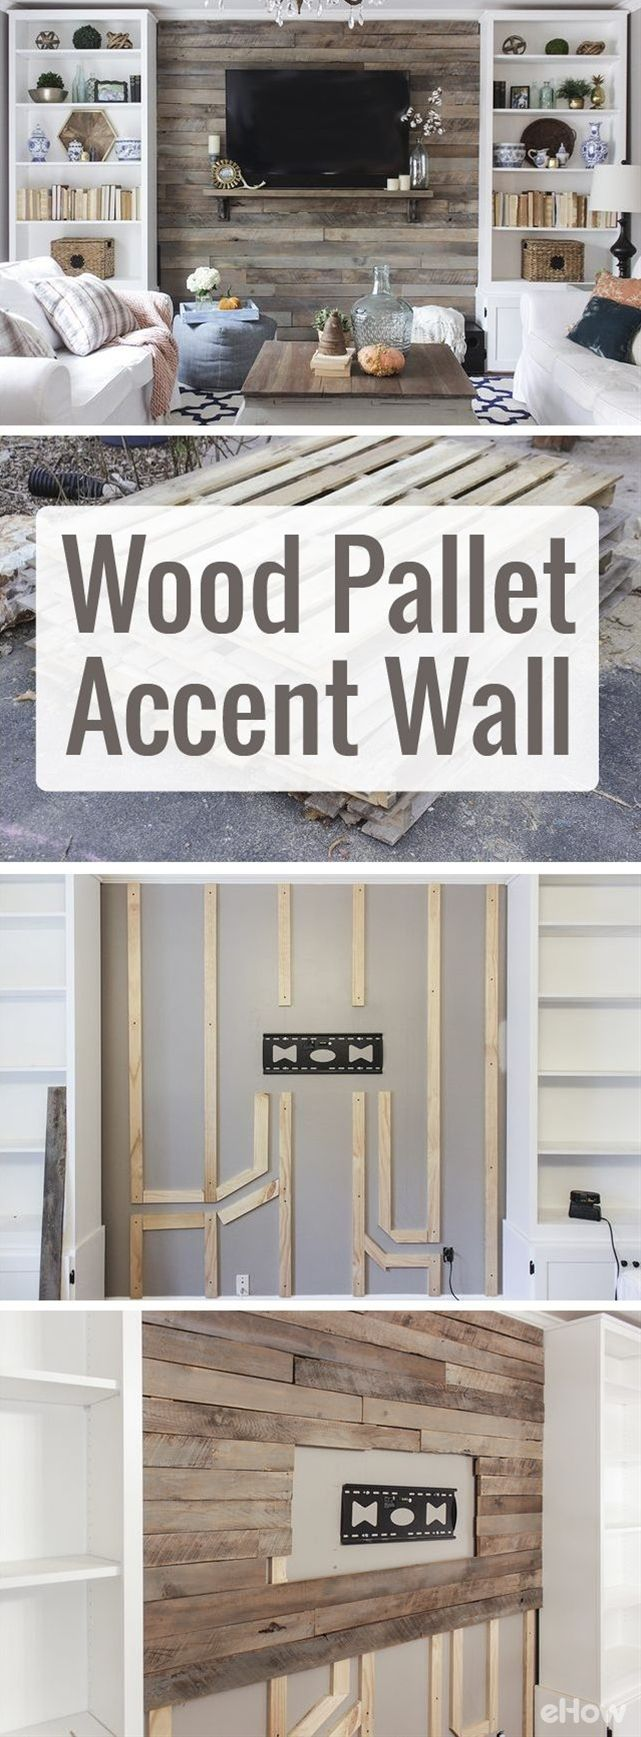 Drastically change the look and feel of your living room with a beautiful wood pallet accent wall.